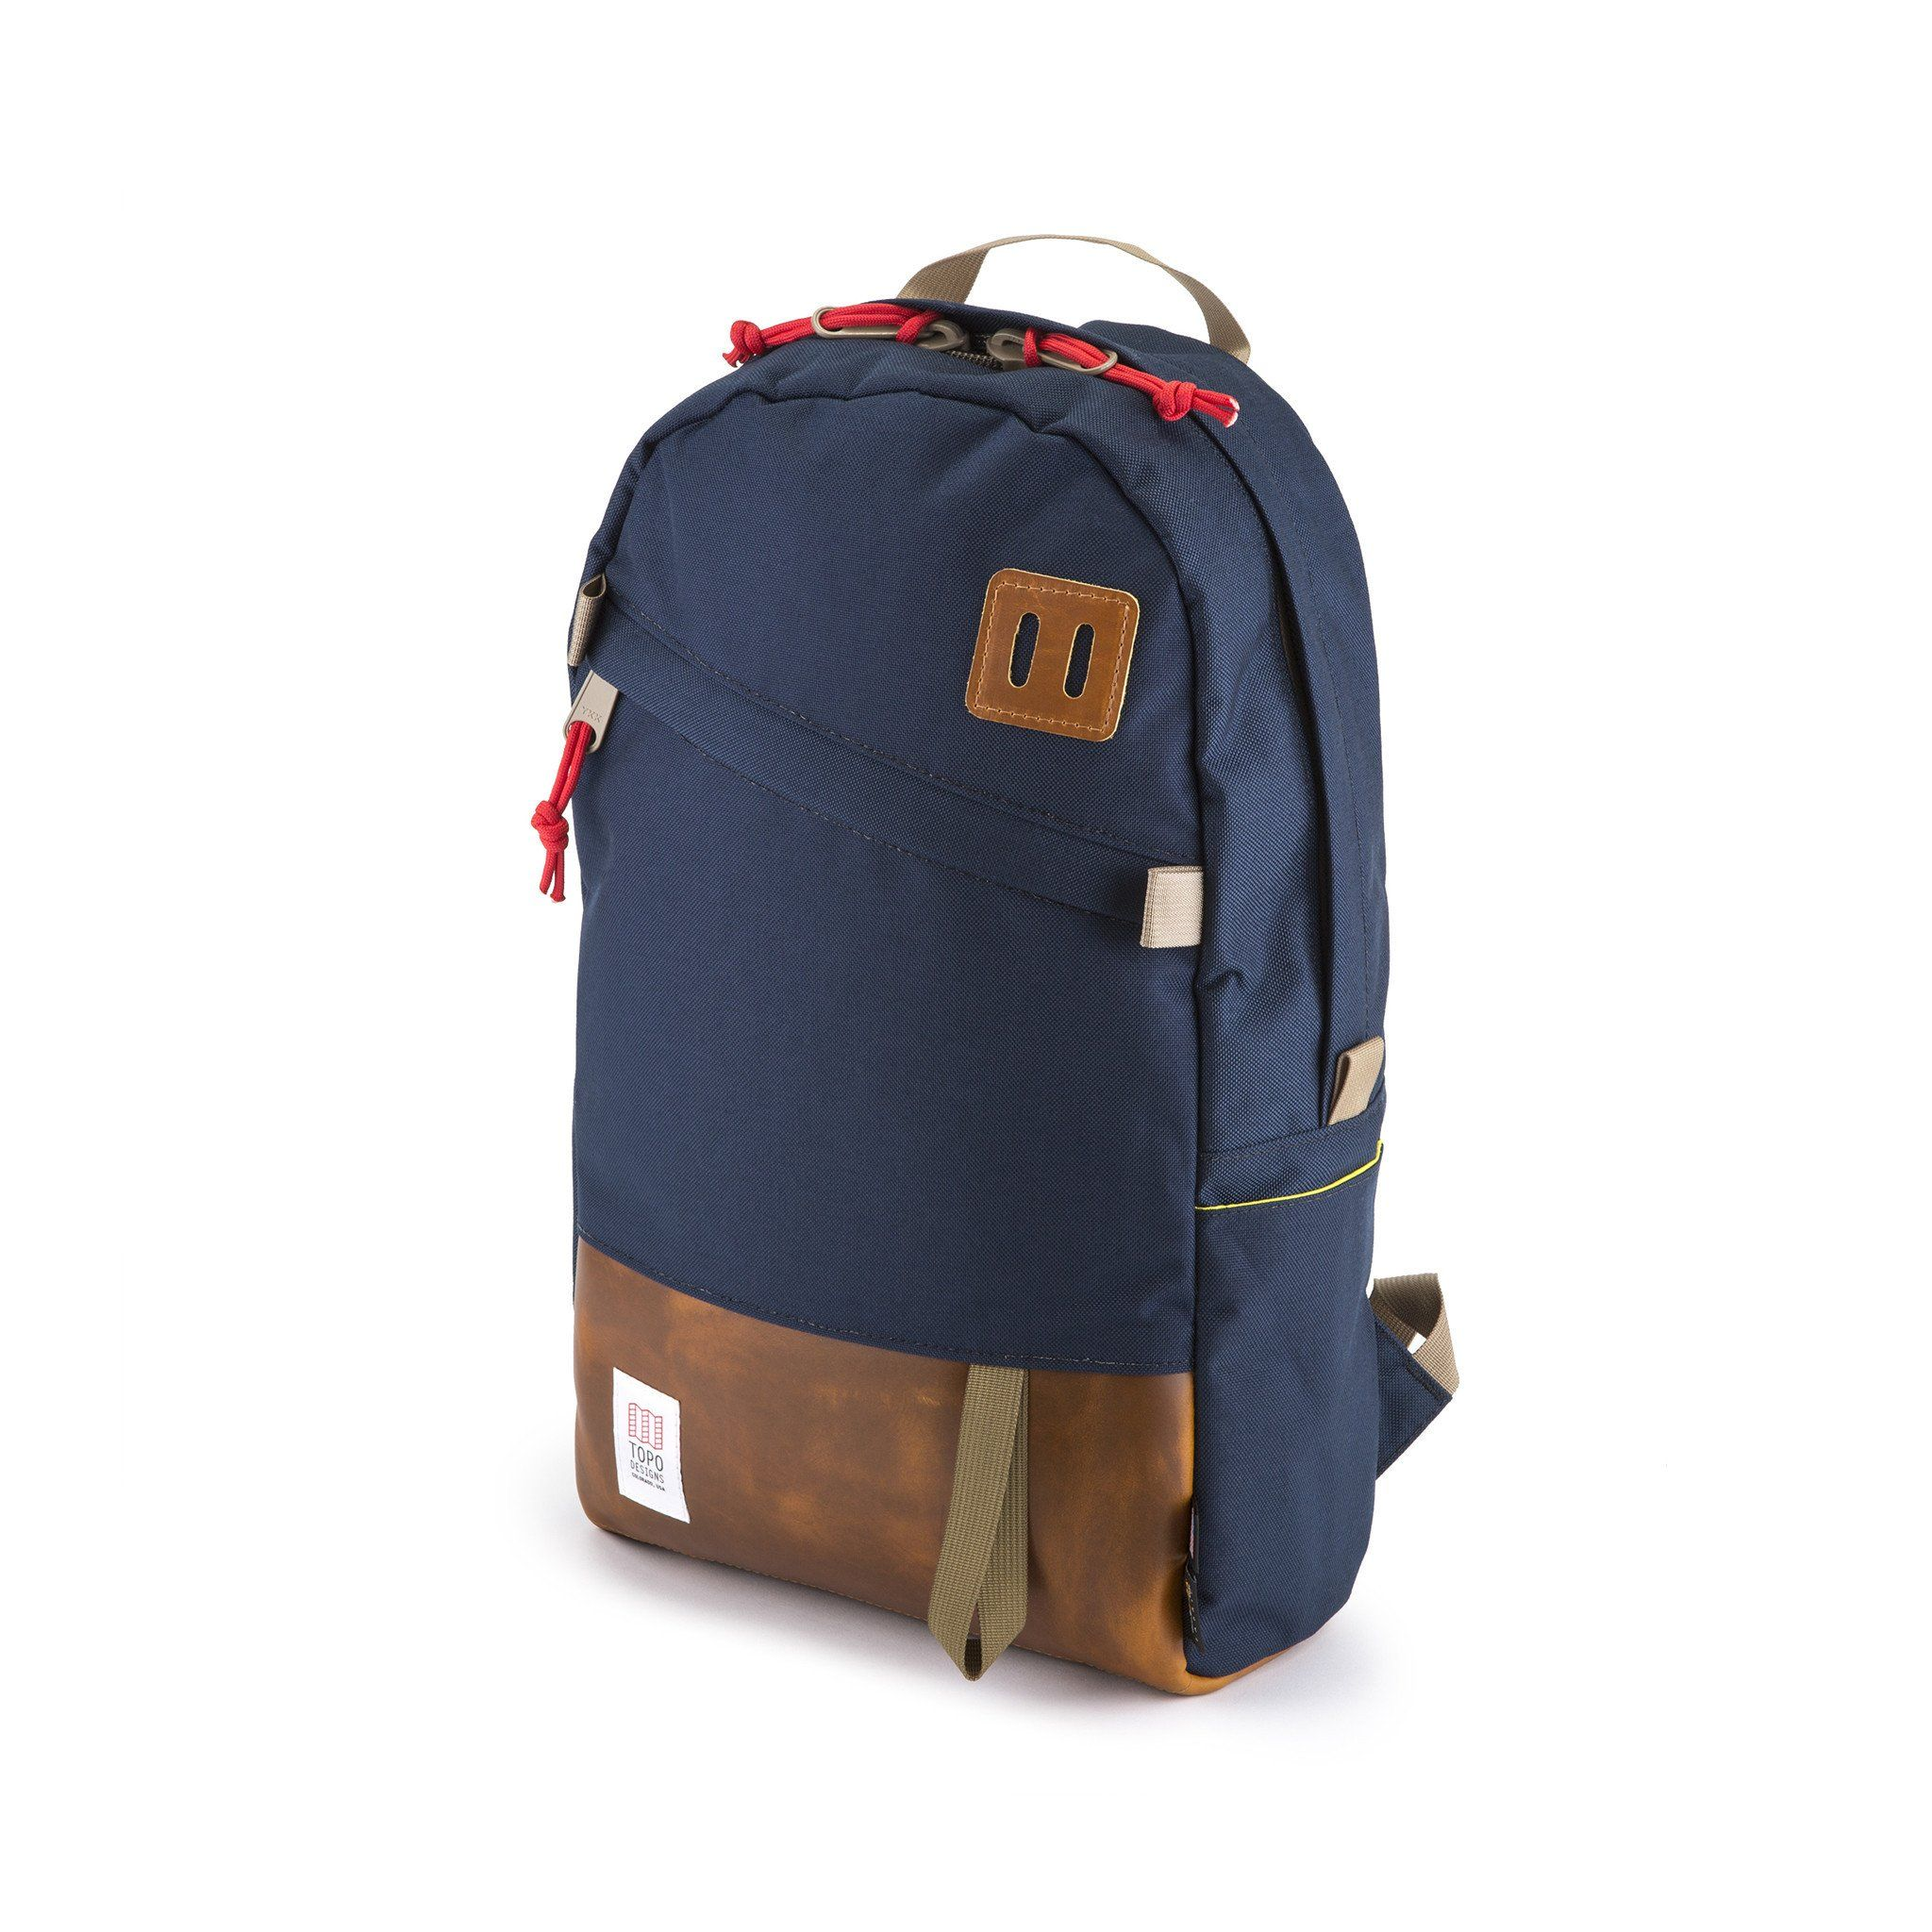 Our classic Daypack backpack. An ideal travel companion, workmate or pack  for the daily 38c4673efa